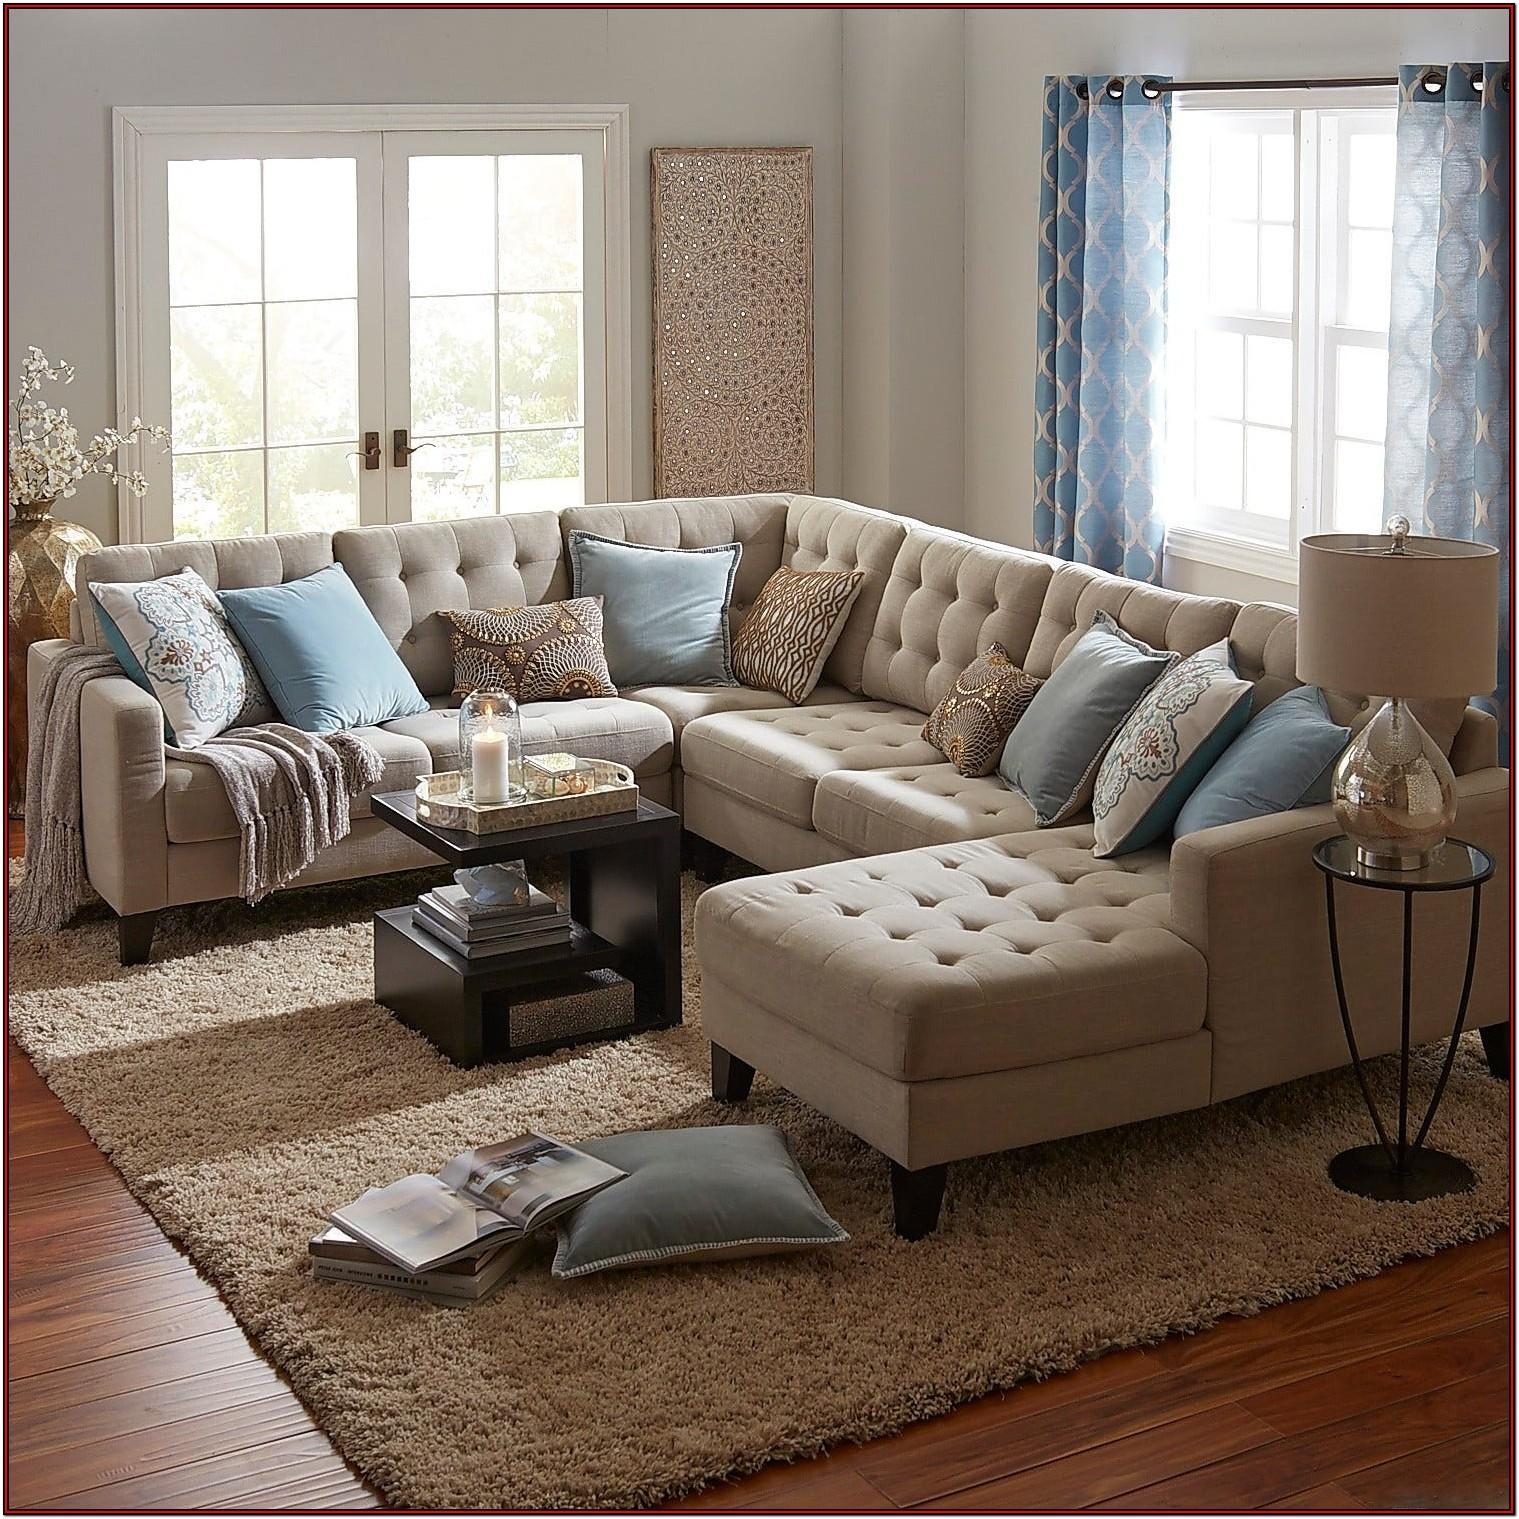 Build Your Own Living Room Furniture